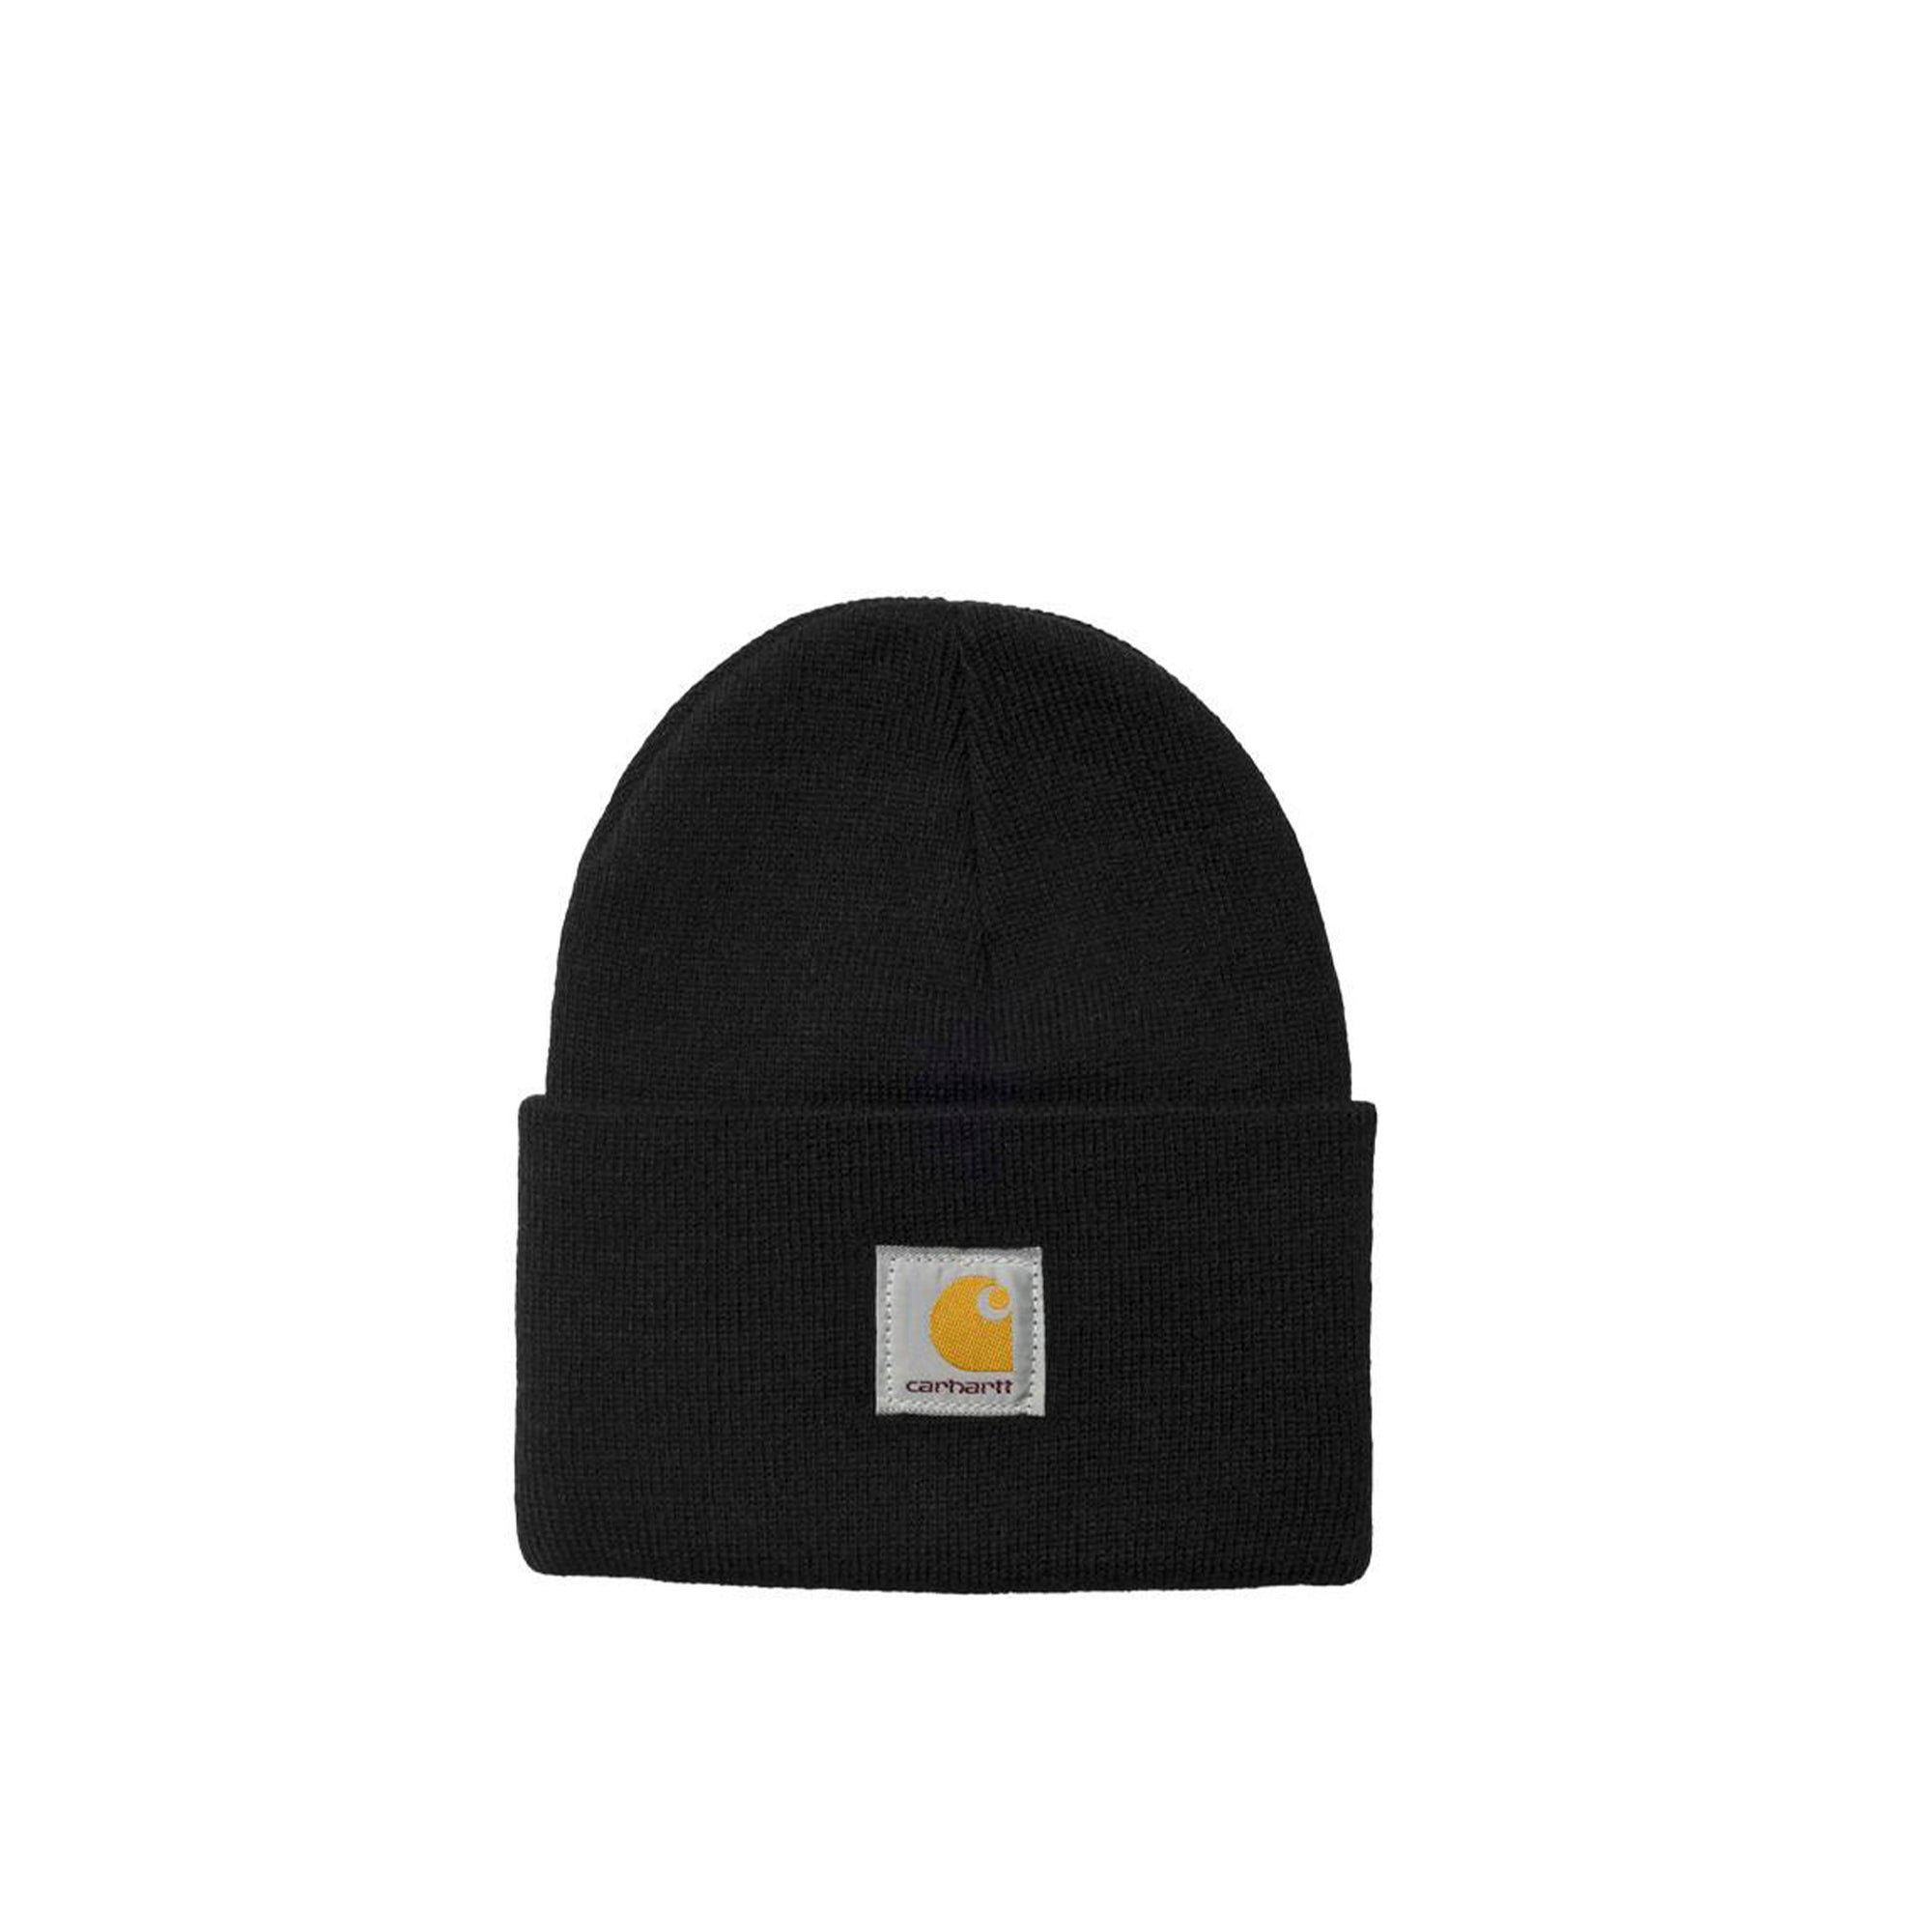 Carhartt WIP Acrylic Watch Hat: Black - The Union Project